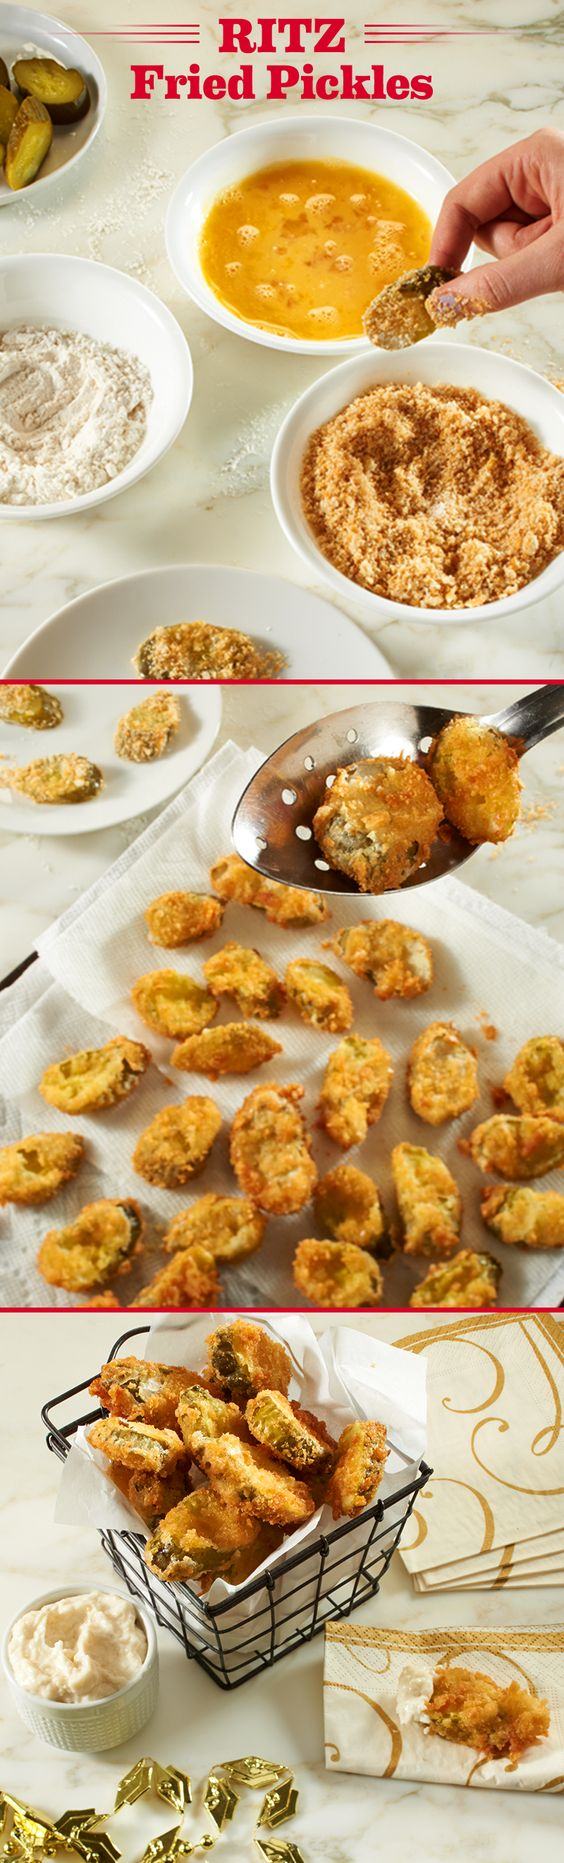 how to make deep fried pickles